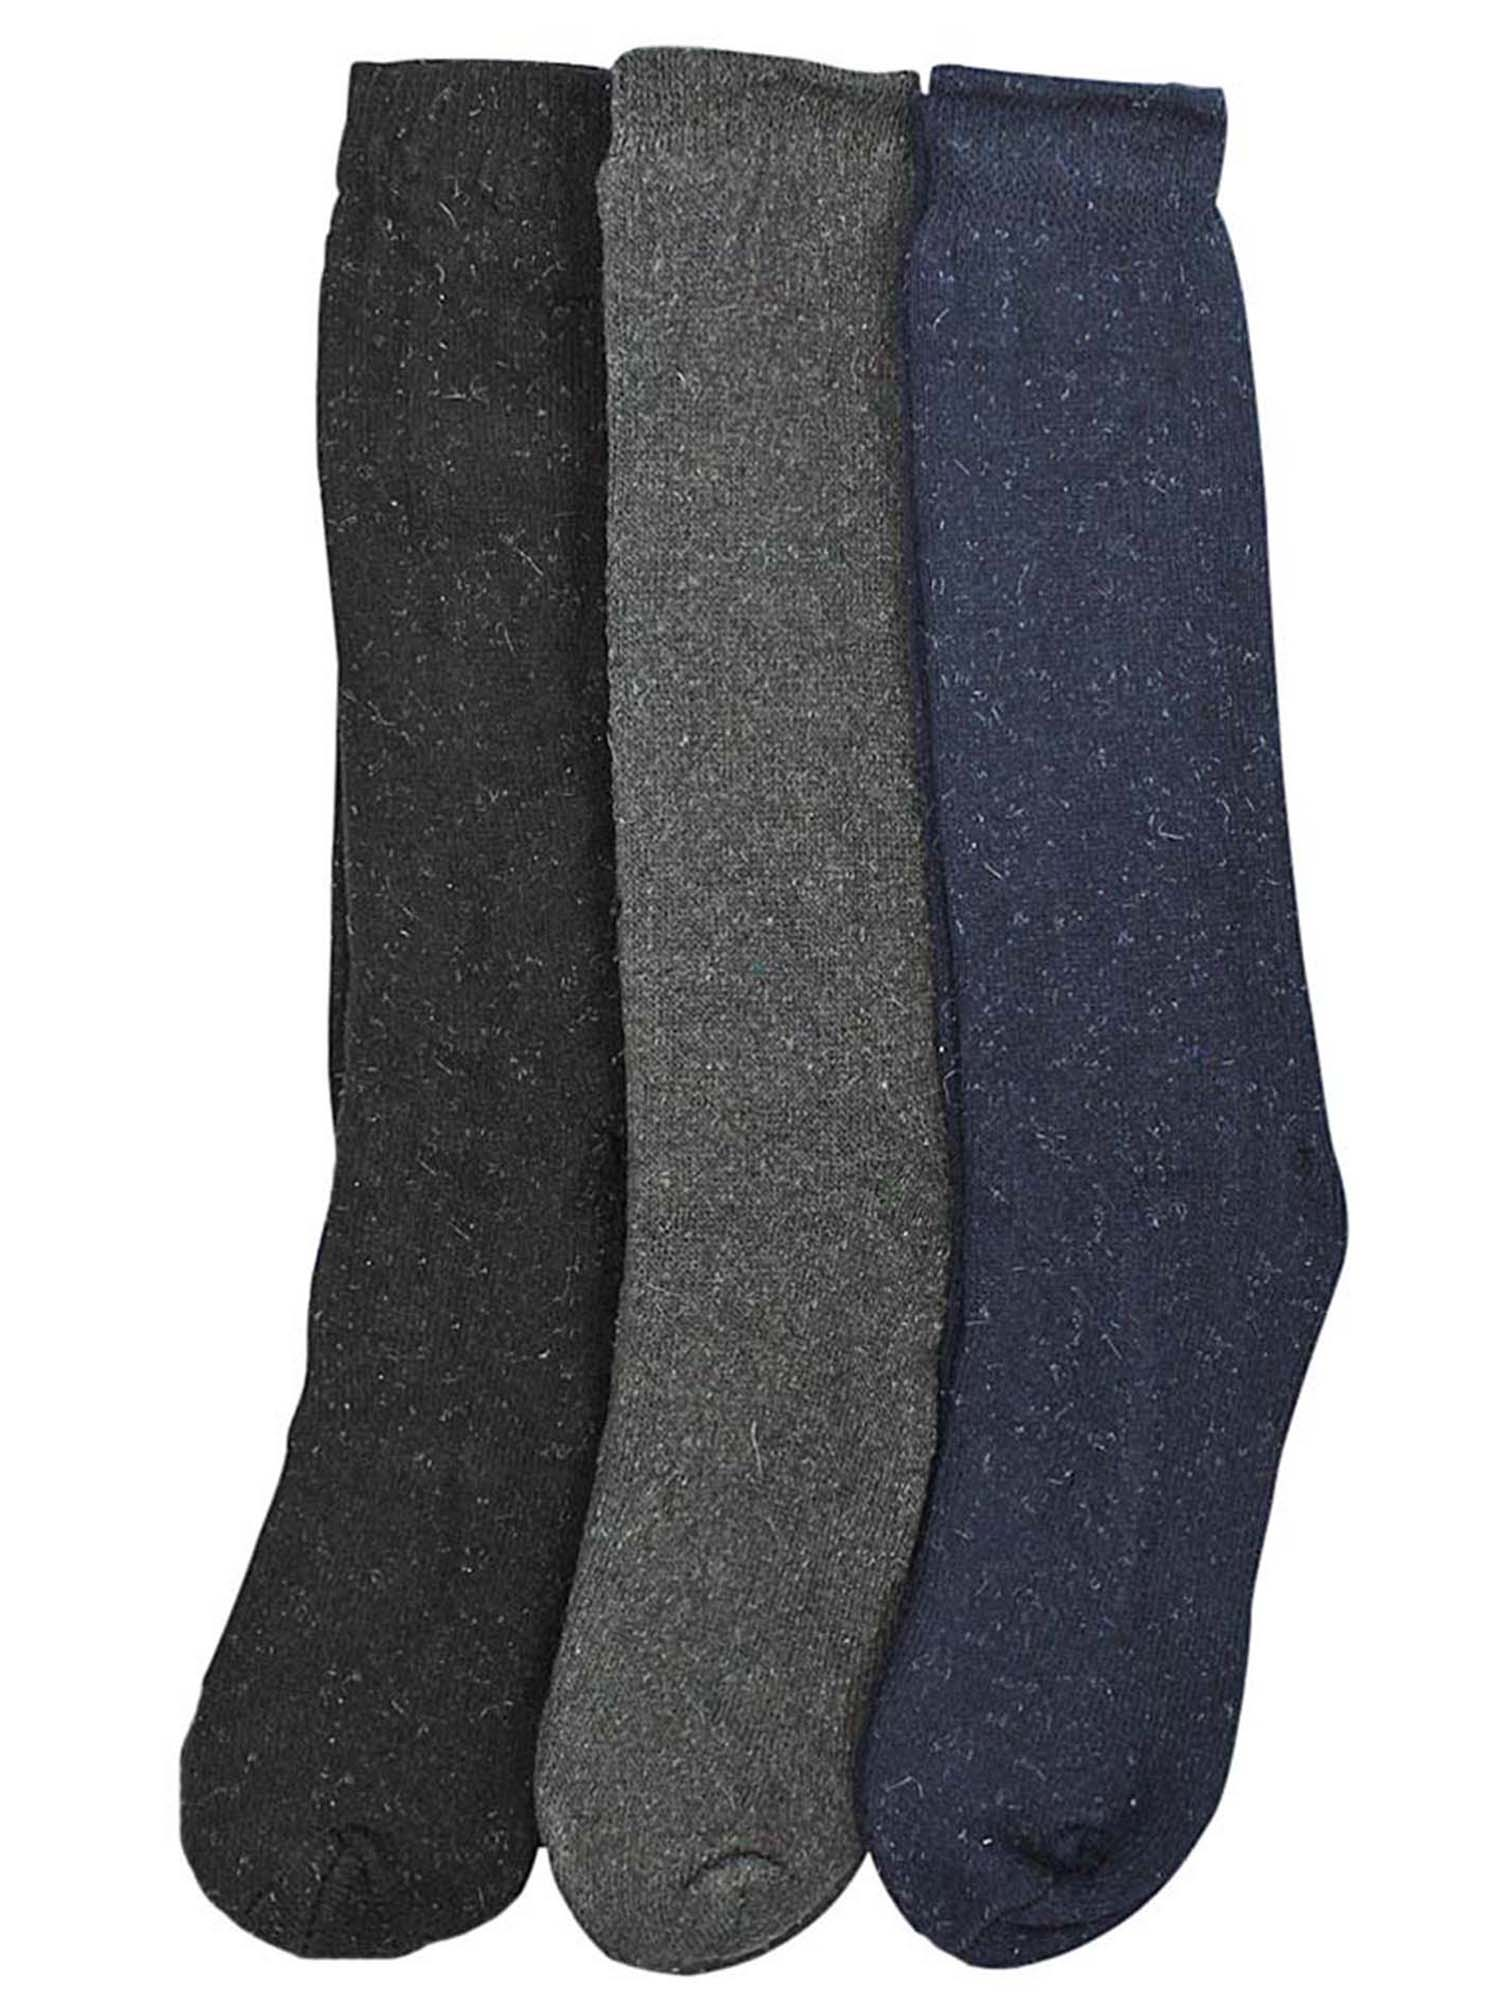 Gray Black & Navy Blue 3 Pack Long Thermal Mens Socks